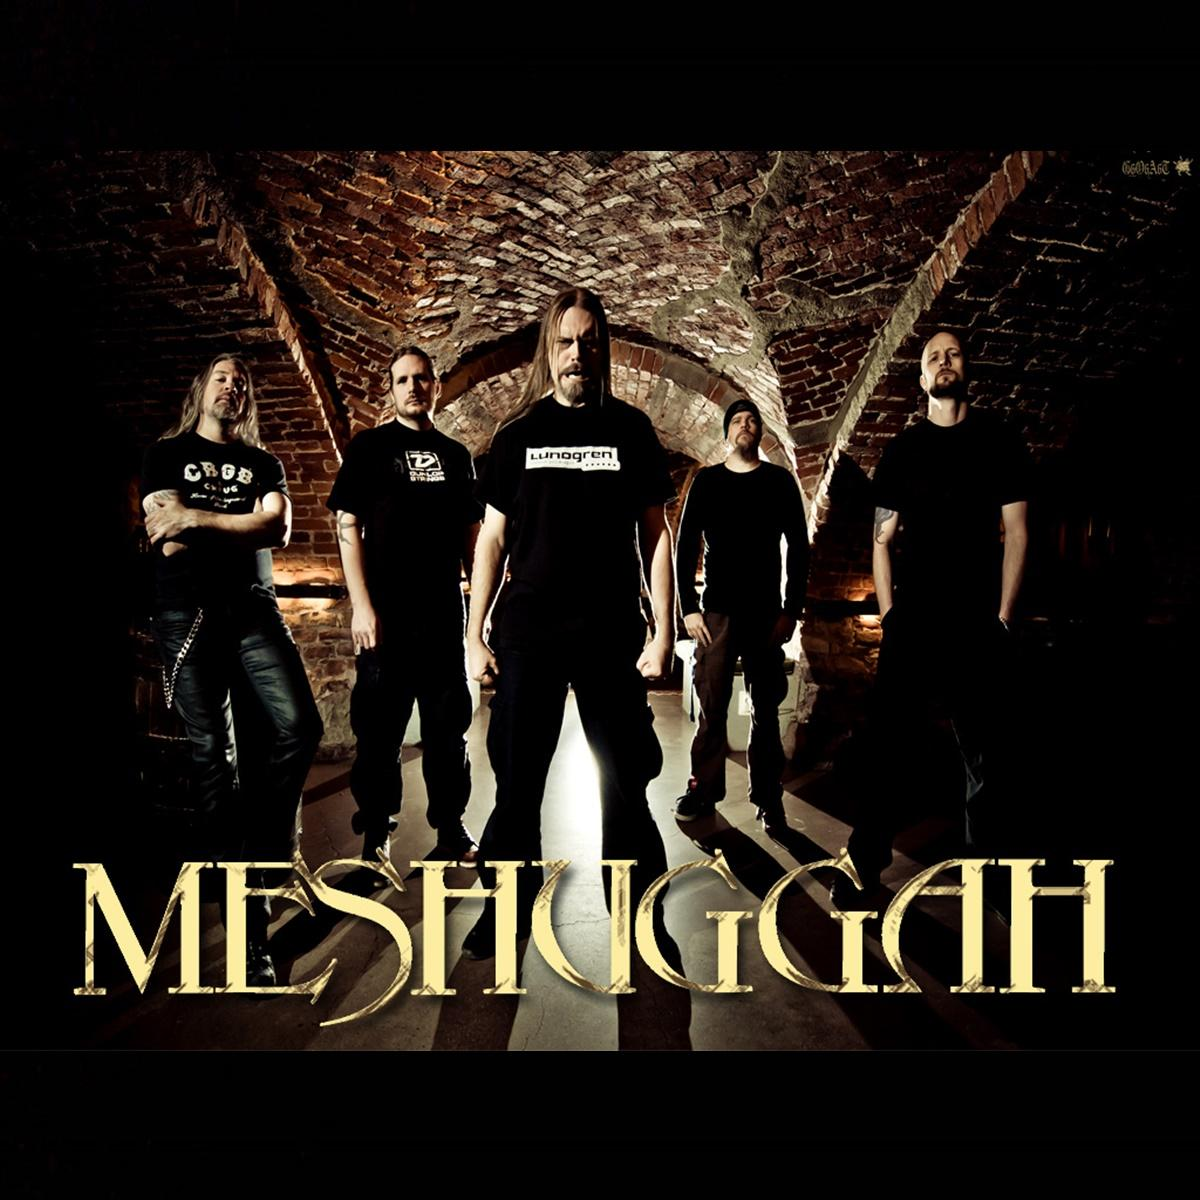 ALBUM REVIEW: THE OPHIDIAN TREK - MESHUGGAH - RockRevolt Mag